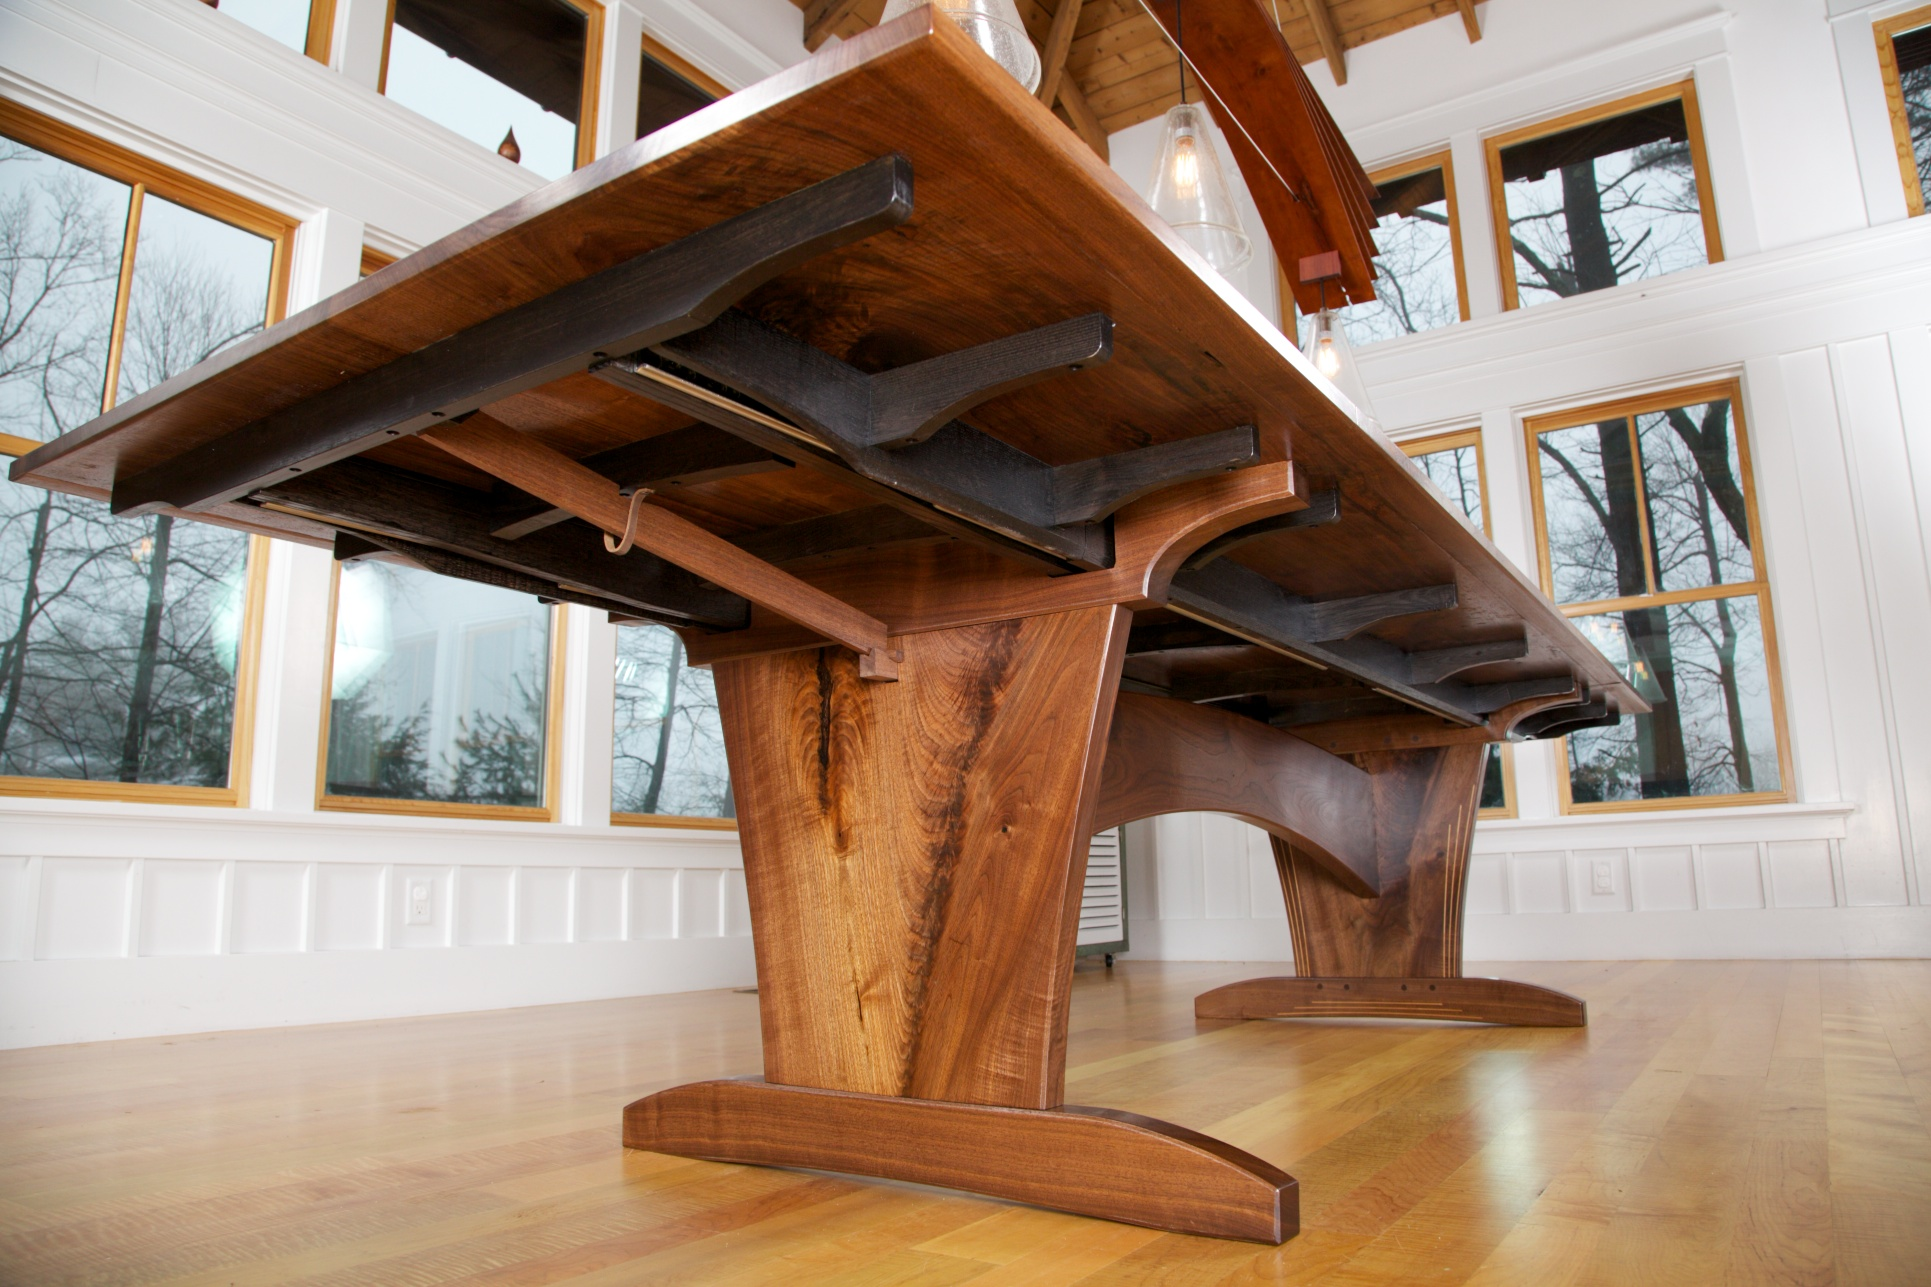 Underside Support Of The Dining Room Table